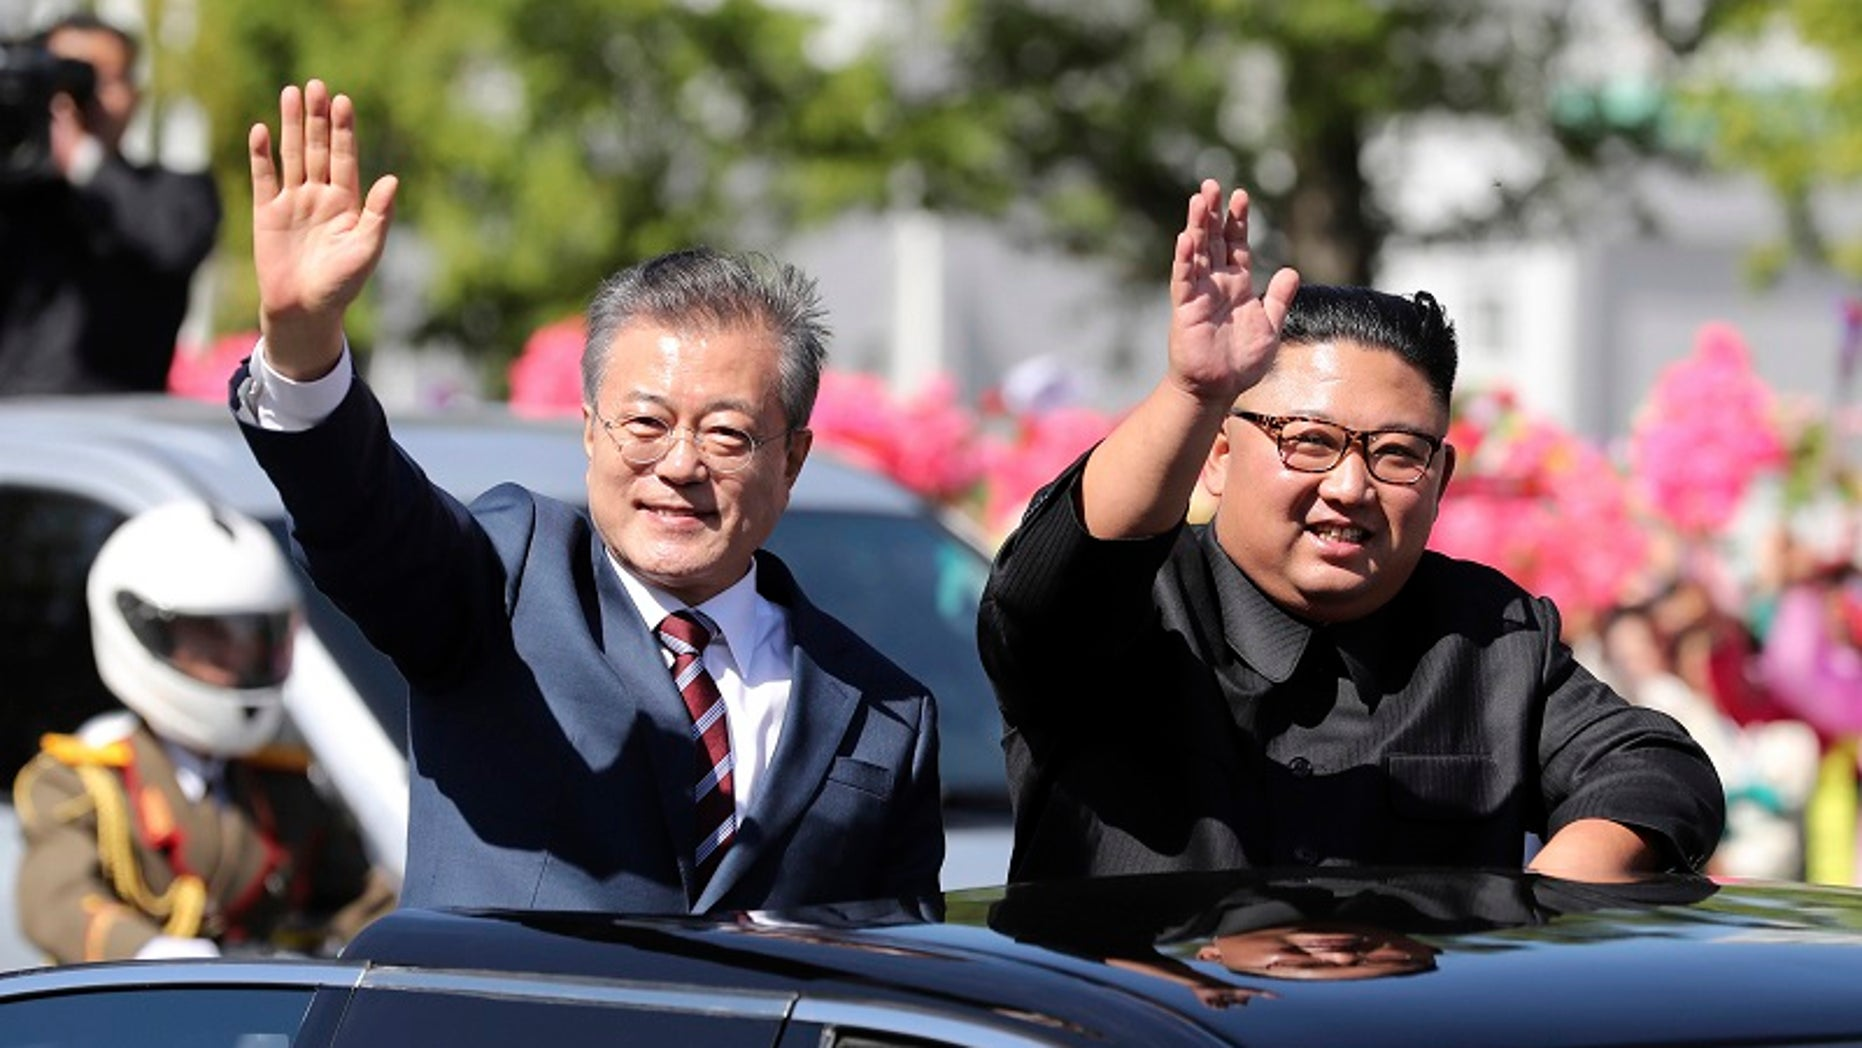 A report said South Korean President Moon Jae-in's official plane was blacklisted by the U.S. because it flew him to North Korea.